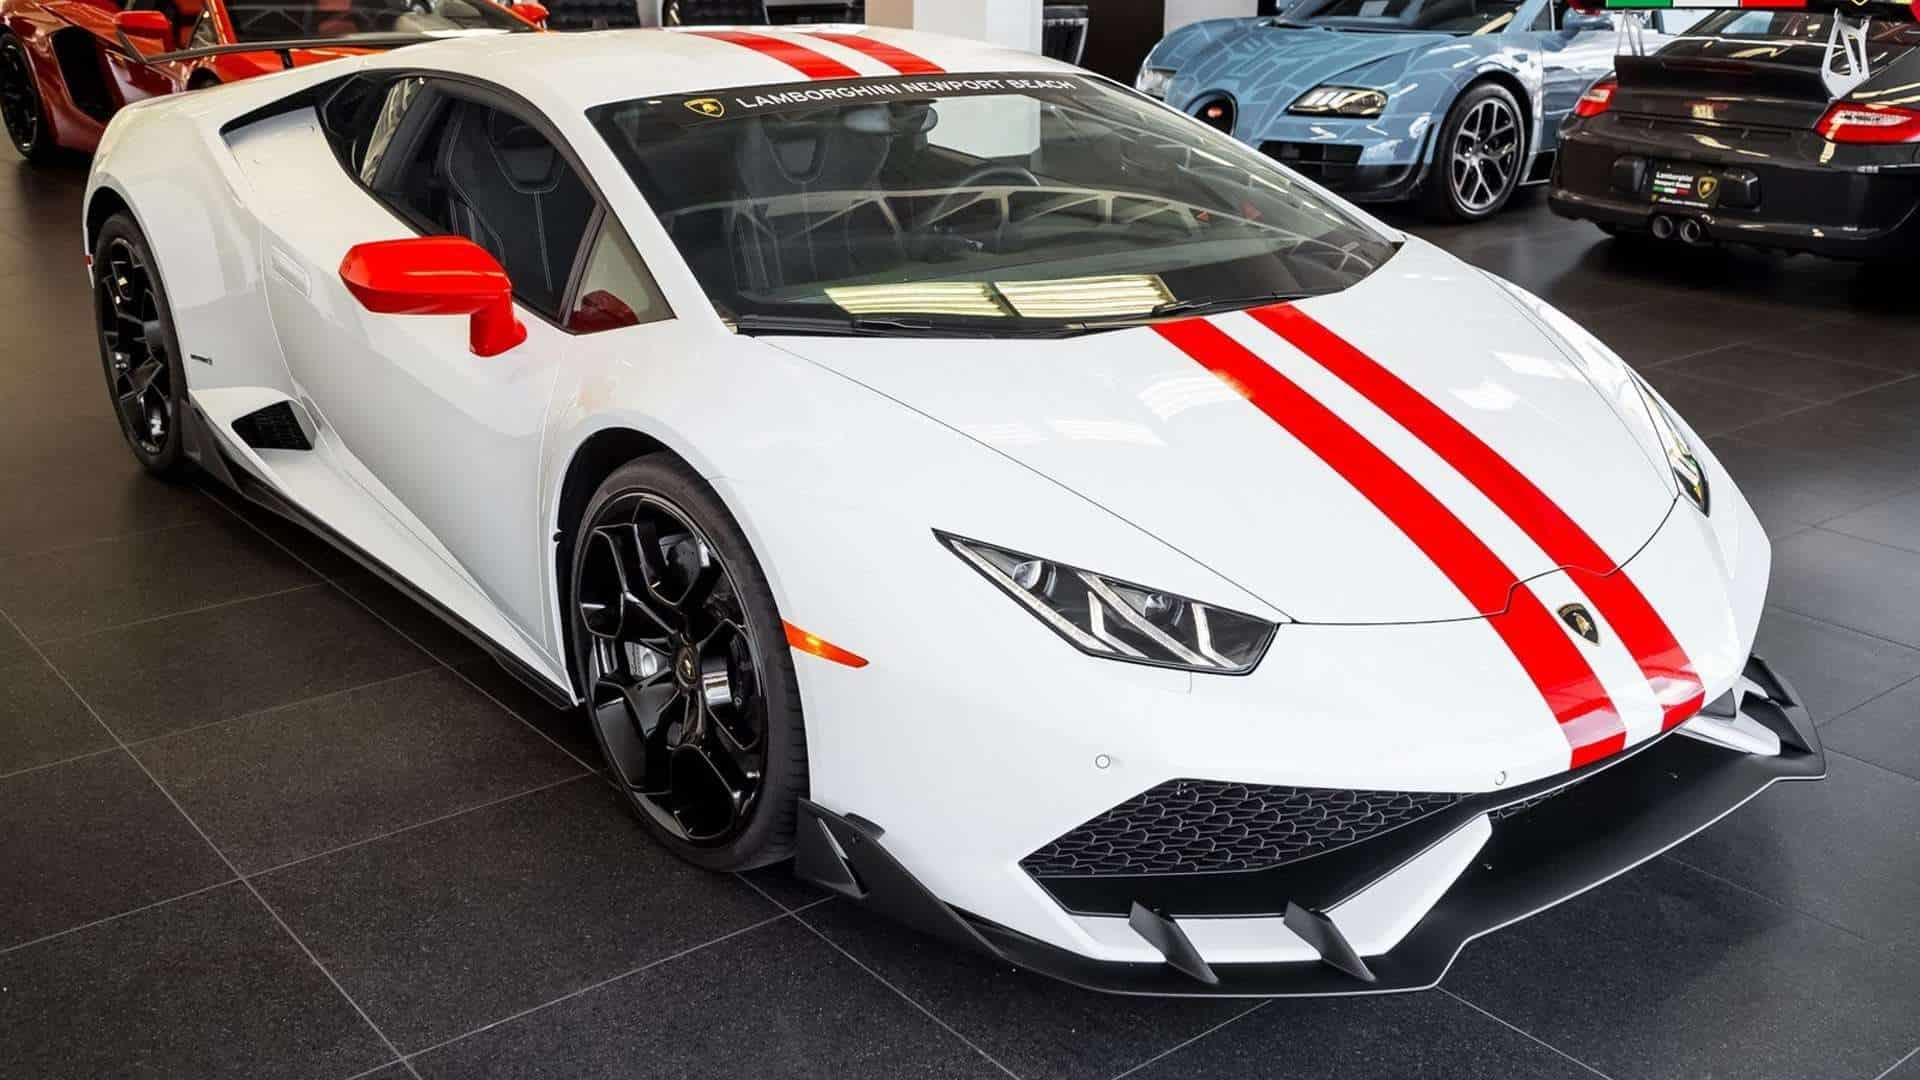 lamborghini 39 s own aero package for the huracan out in the open. Black Bedroom Furniture Sets. Home Design Ideas